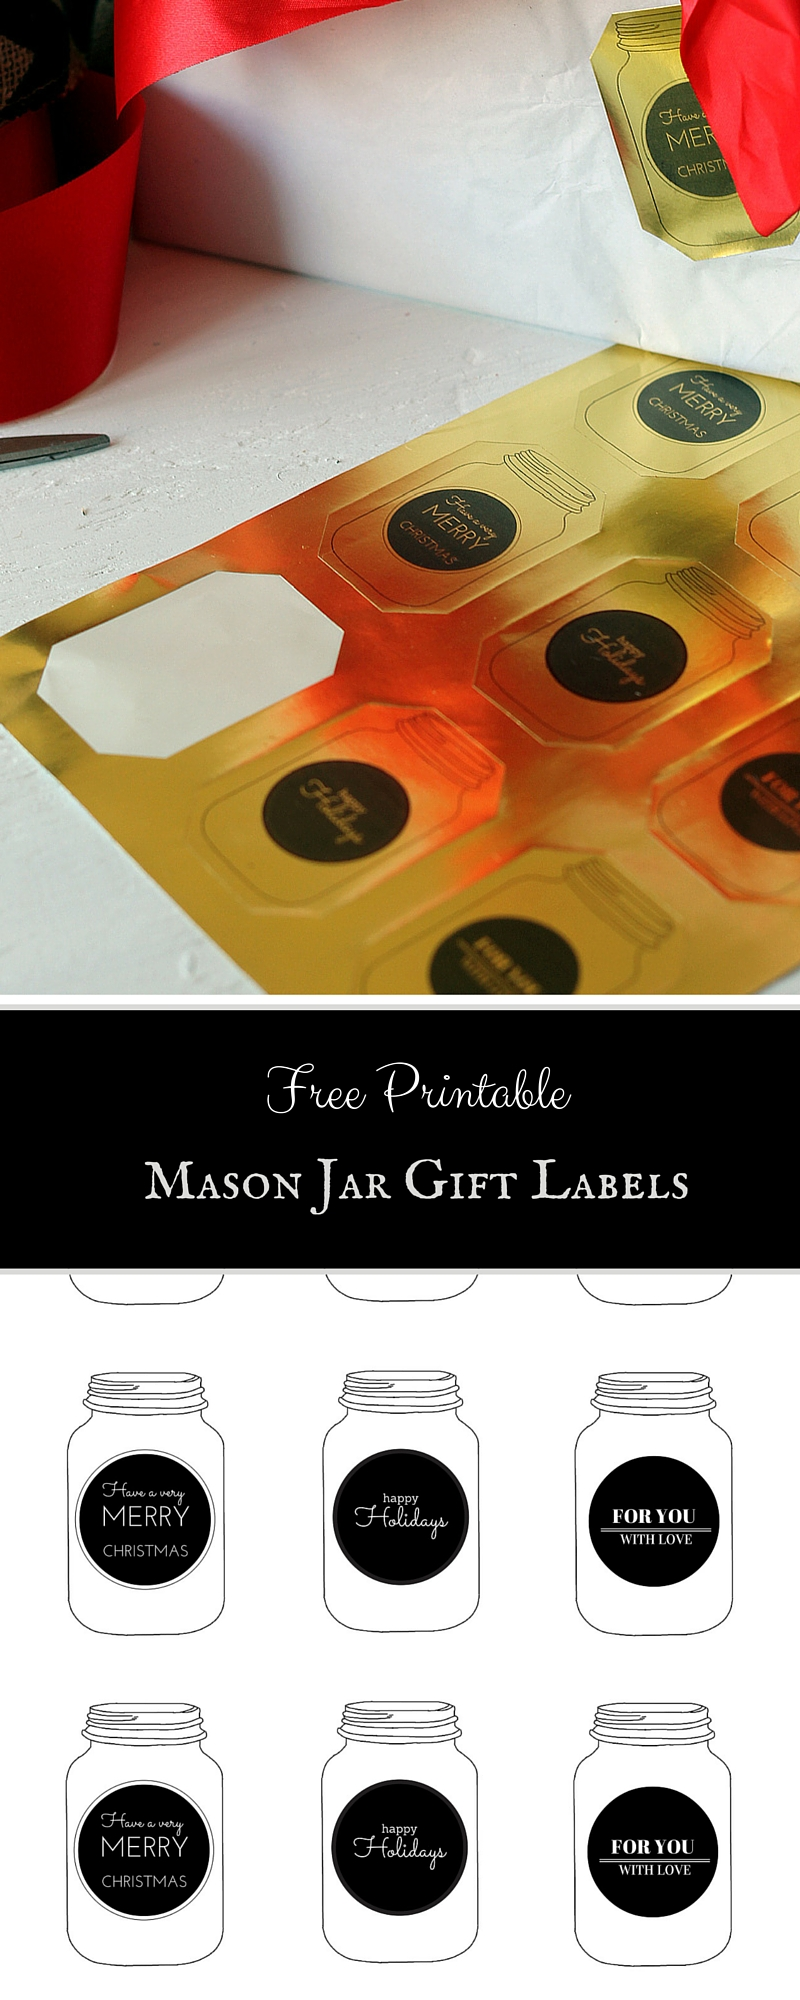 Free Printable Mason Jar Gift Labels The Country Chic Cottage